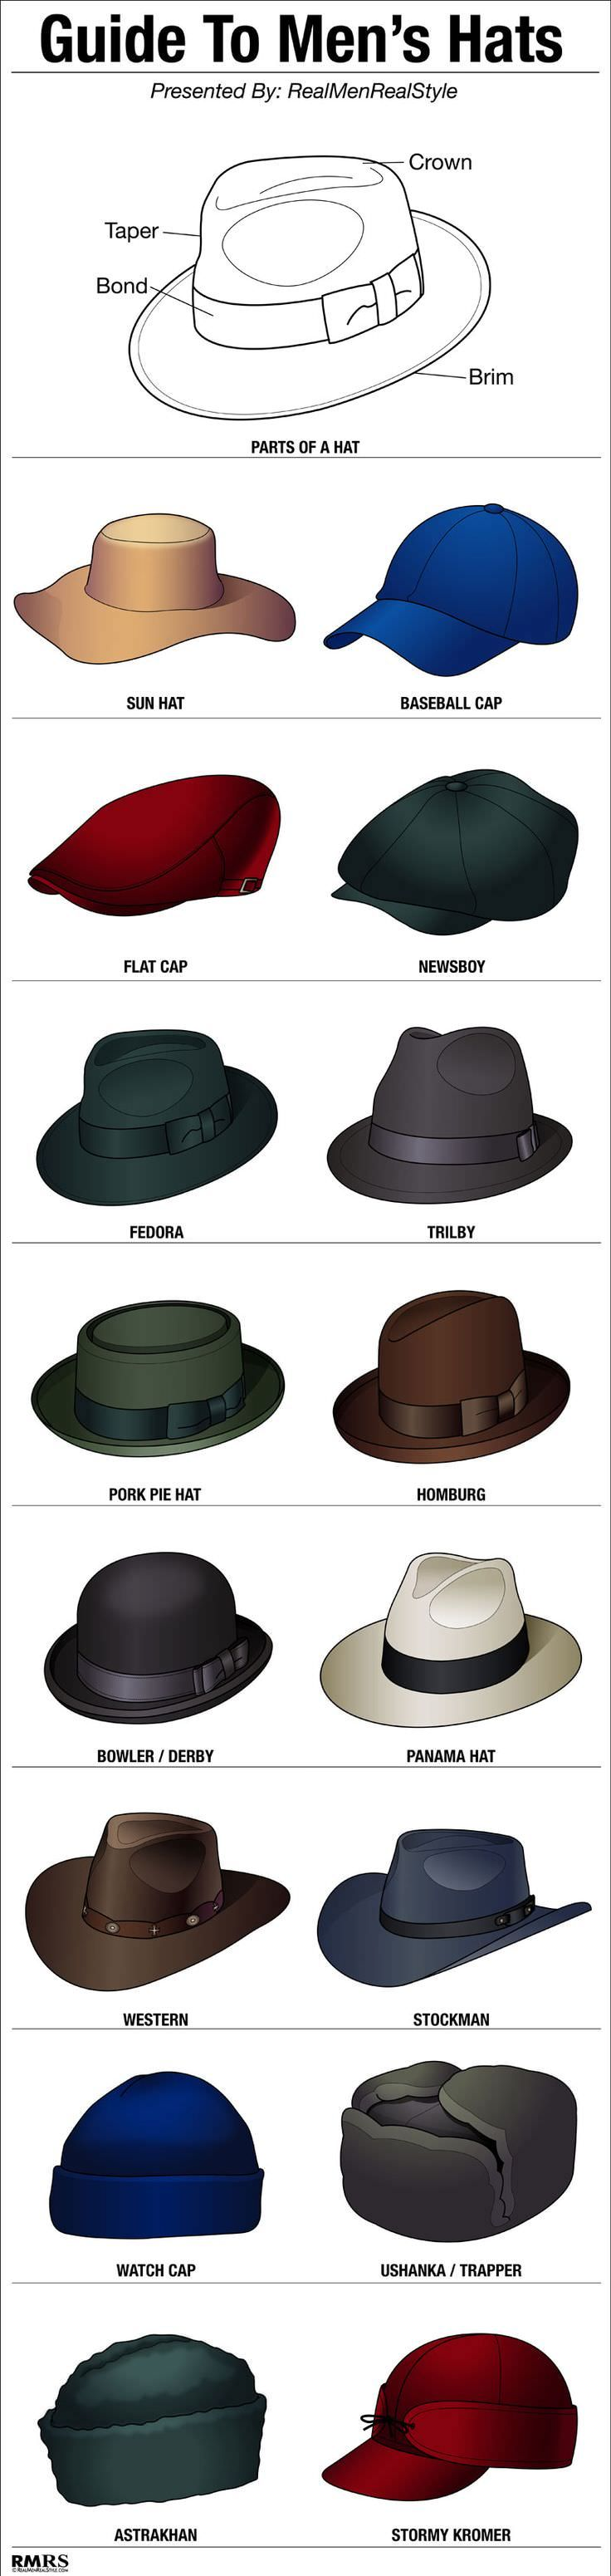 Different Types of Hats for Men